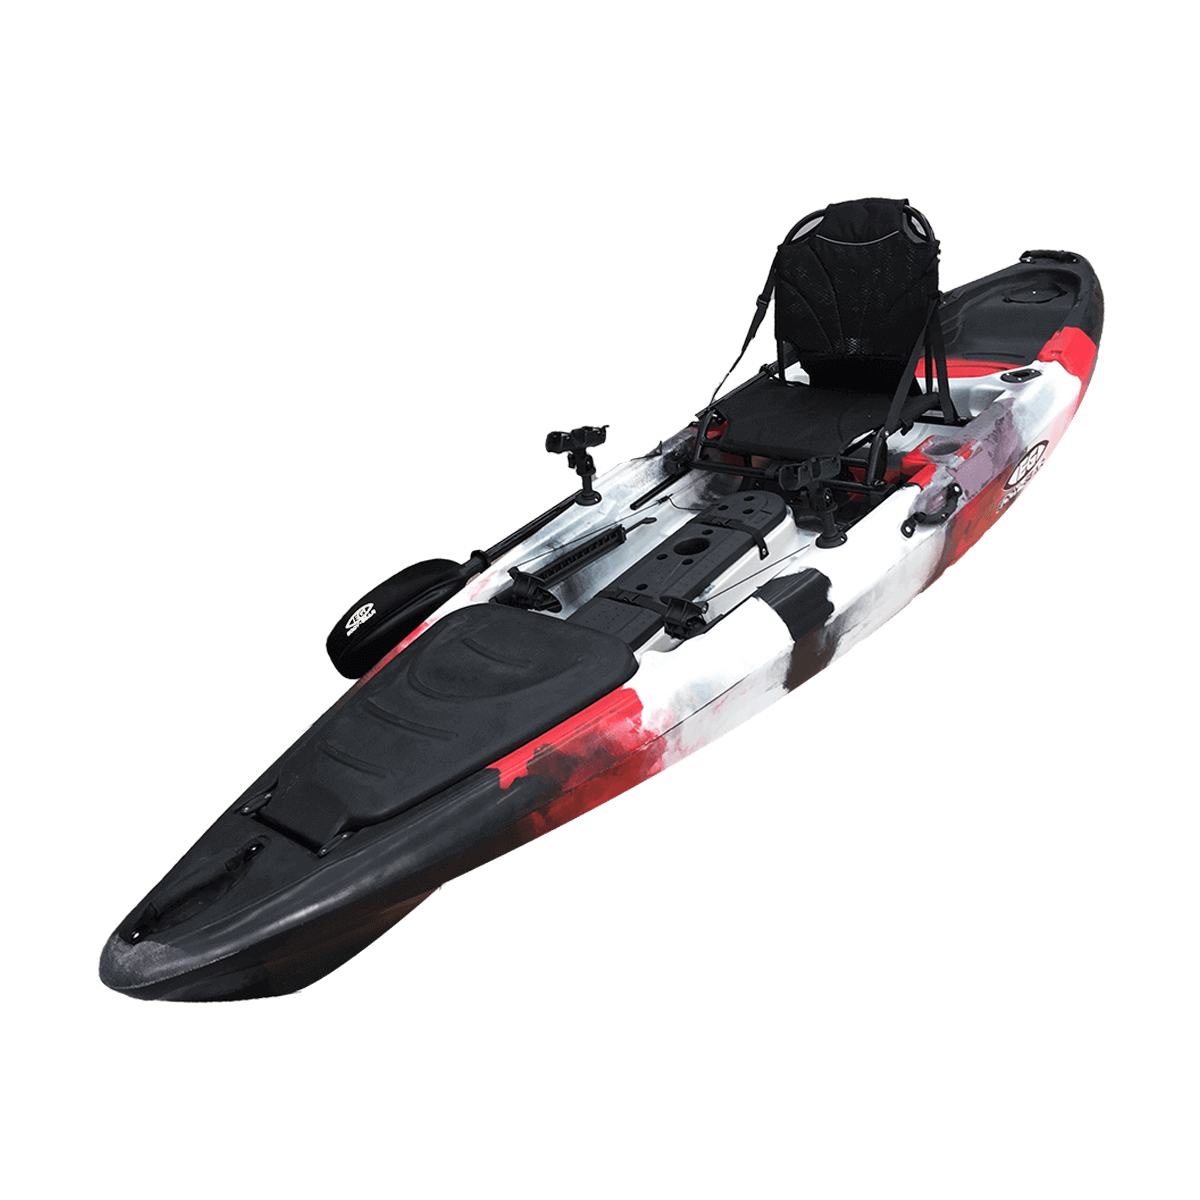 Trevally || Kayak for Fishing | Eddy-Gear.com-Eddy-Gear's Kayak for Fishing!